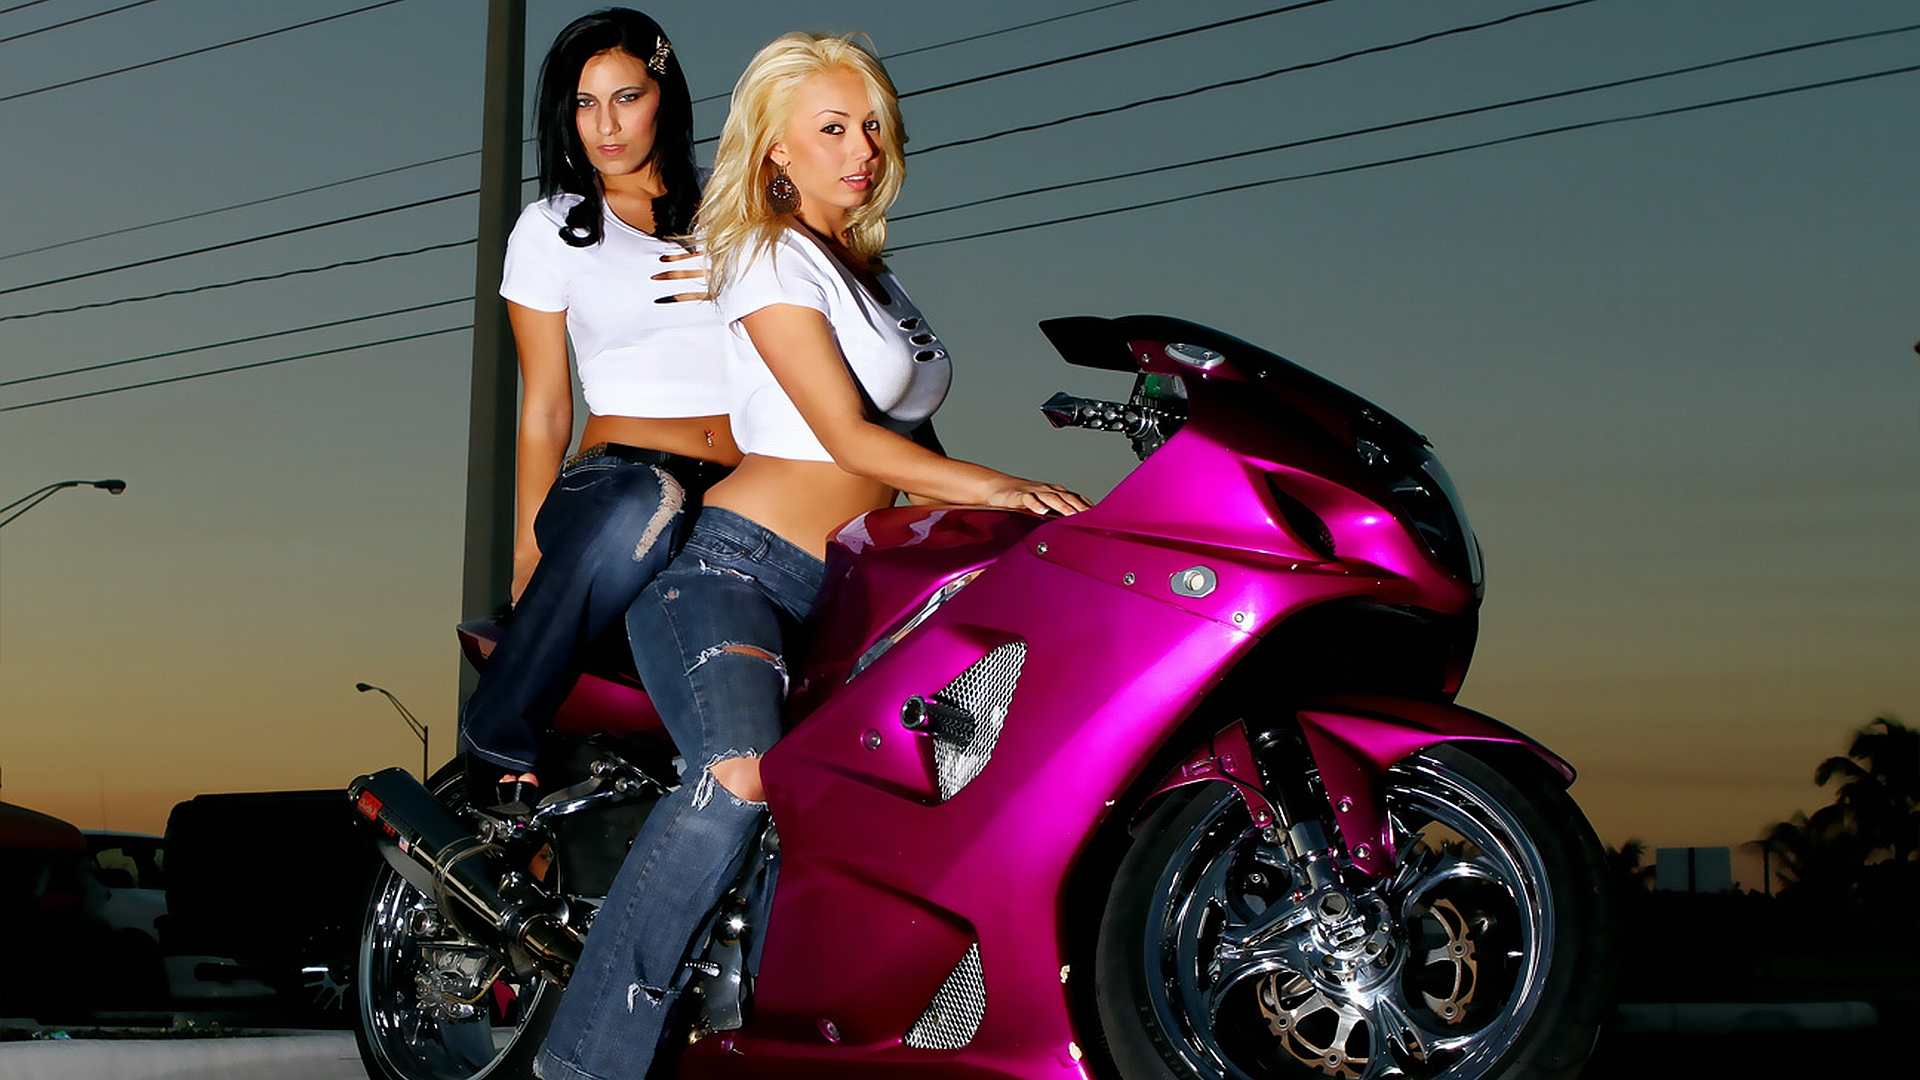 Image result for sports bike girls